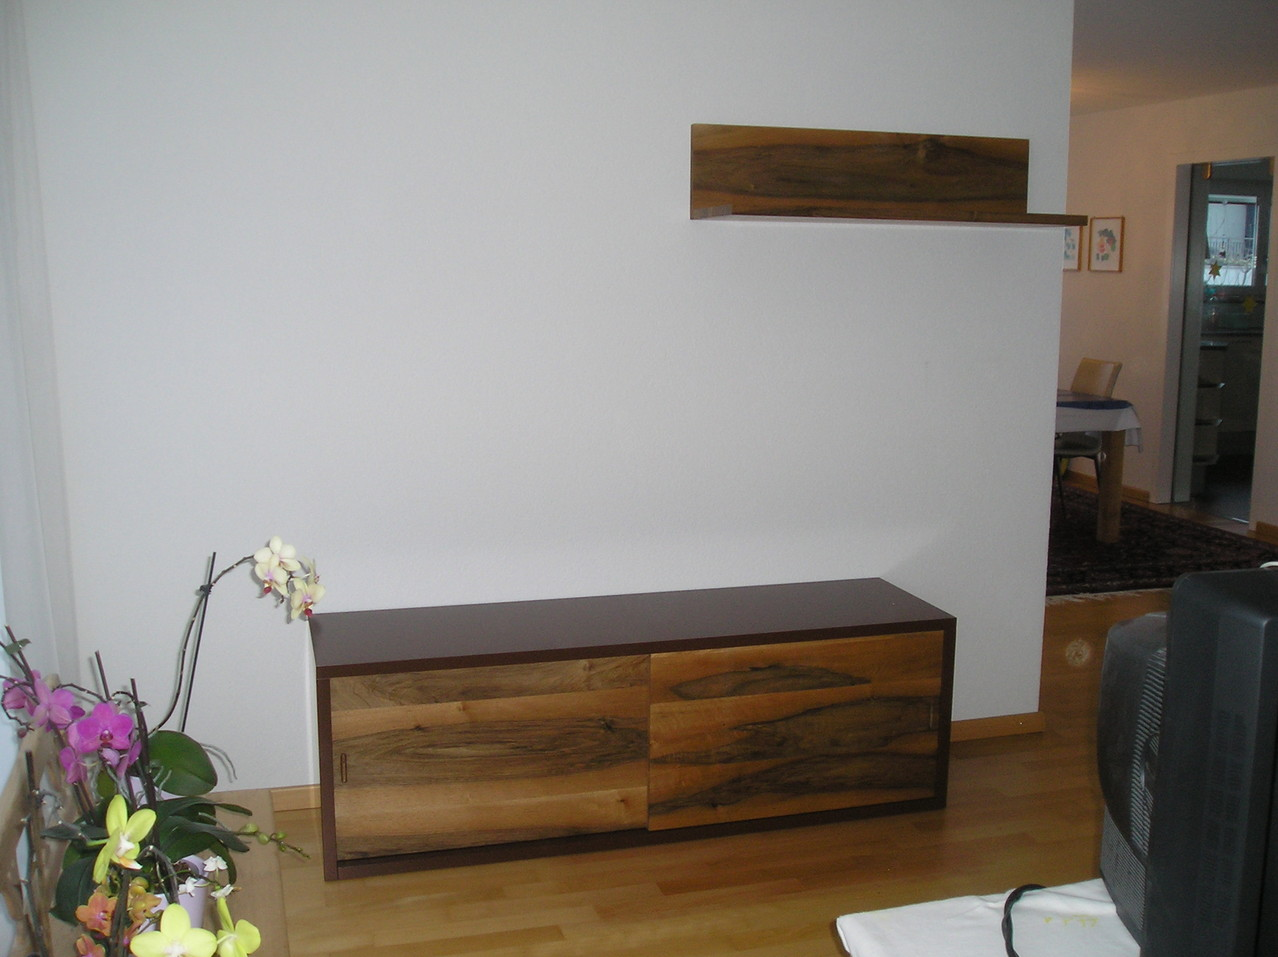 Sideboard in Oberkirch